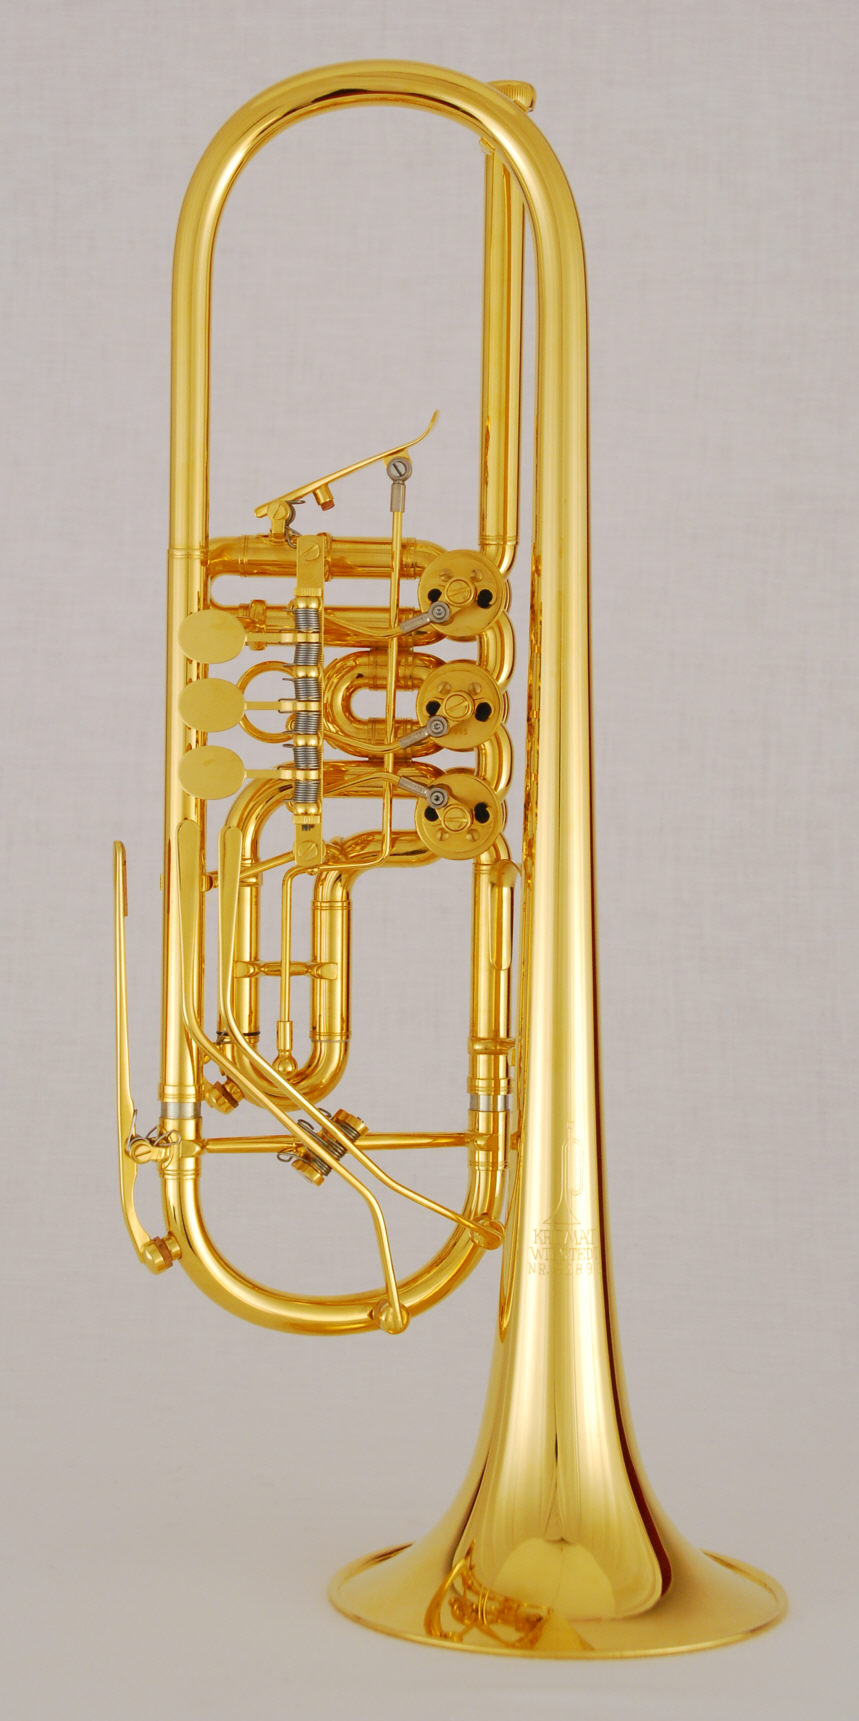 Etrumpet in Bb with rotary valves